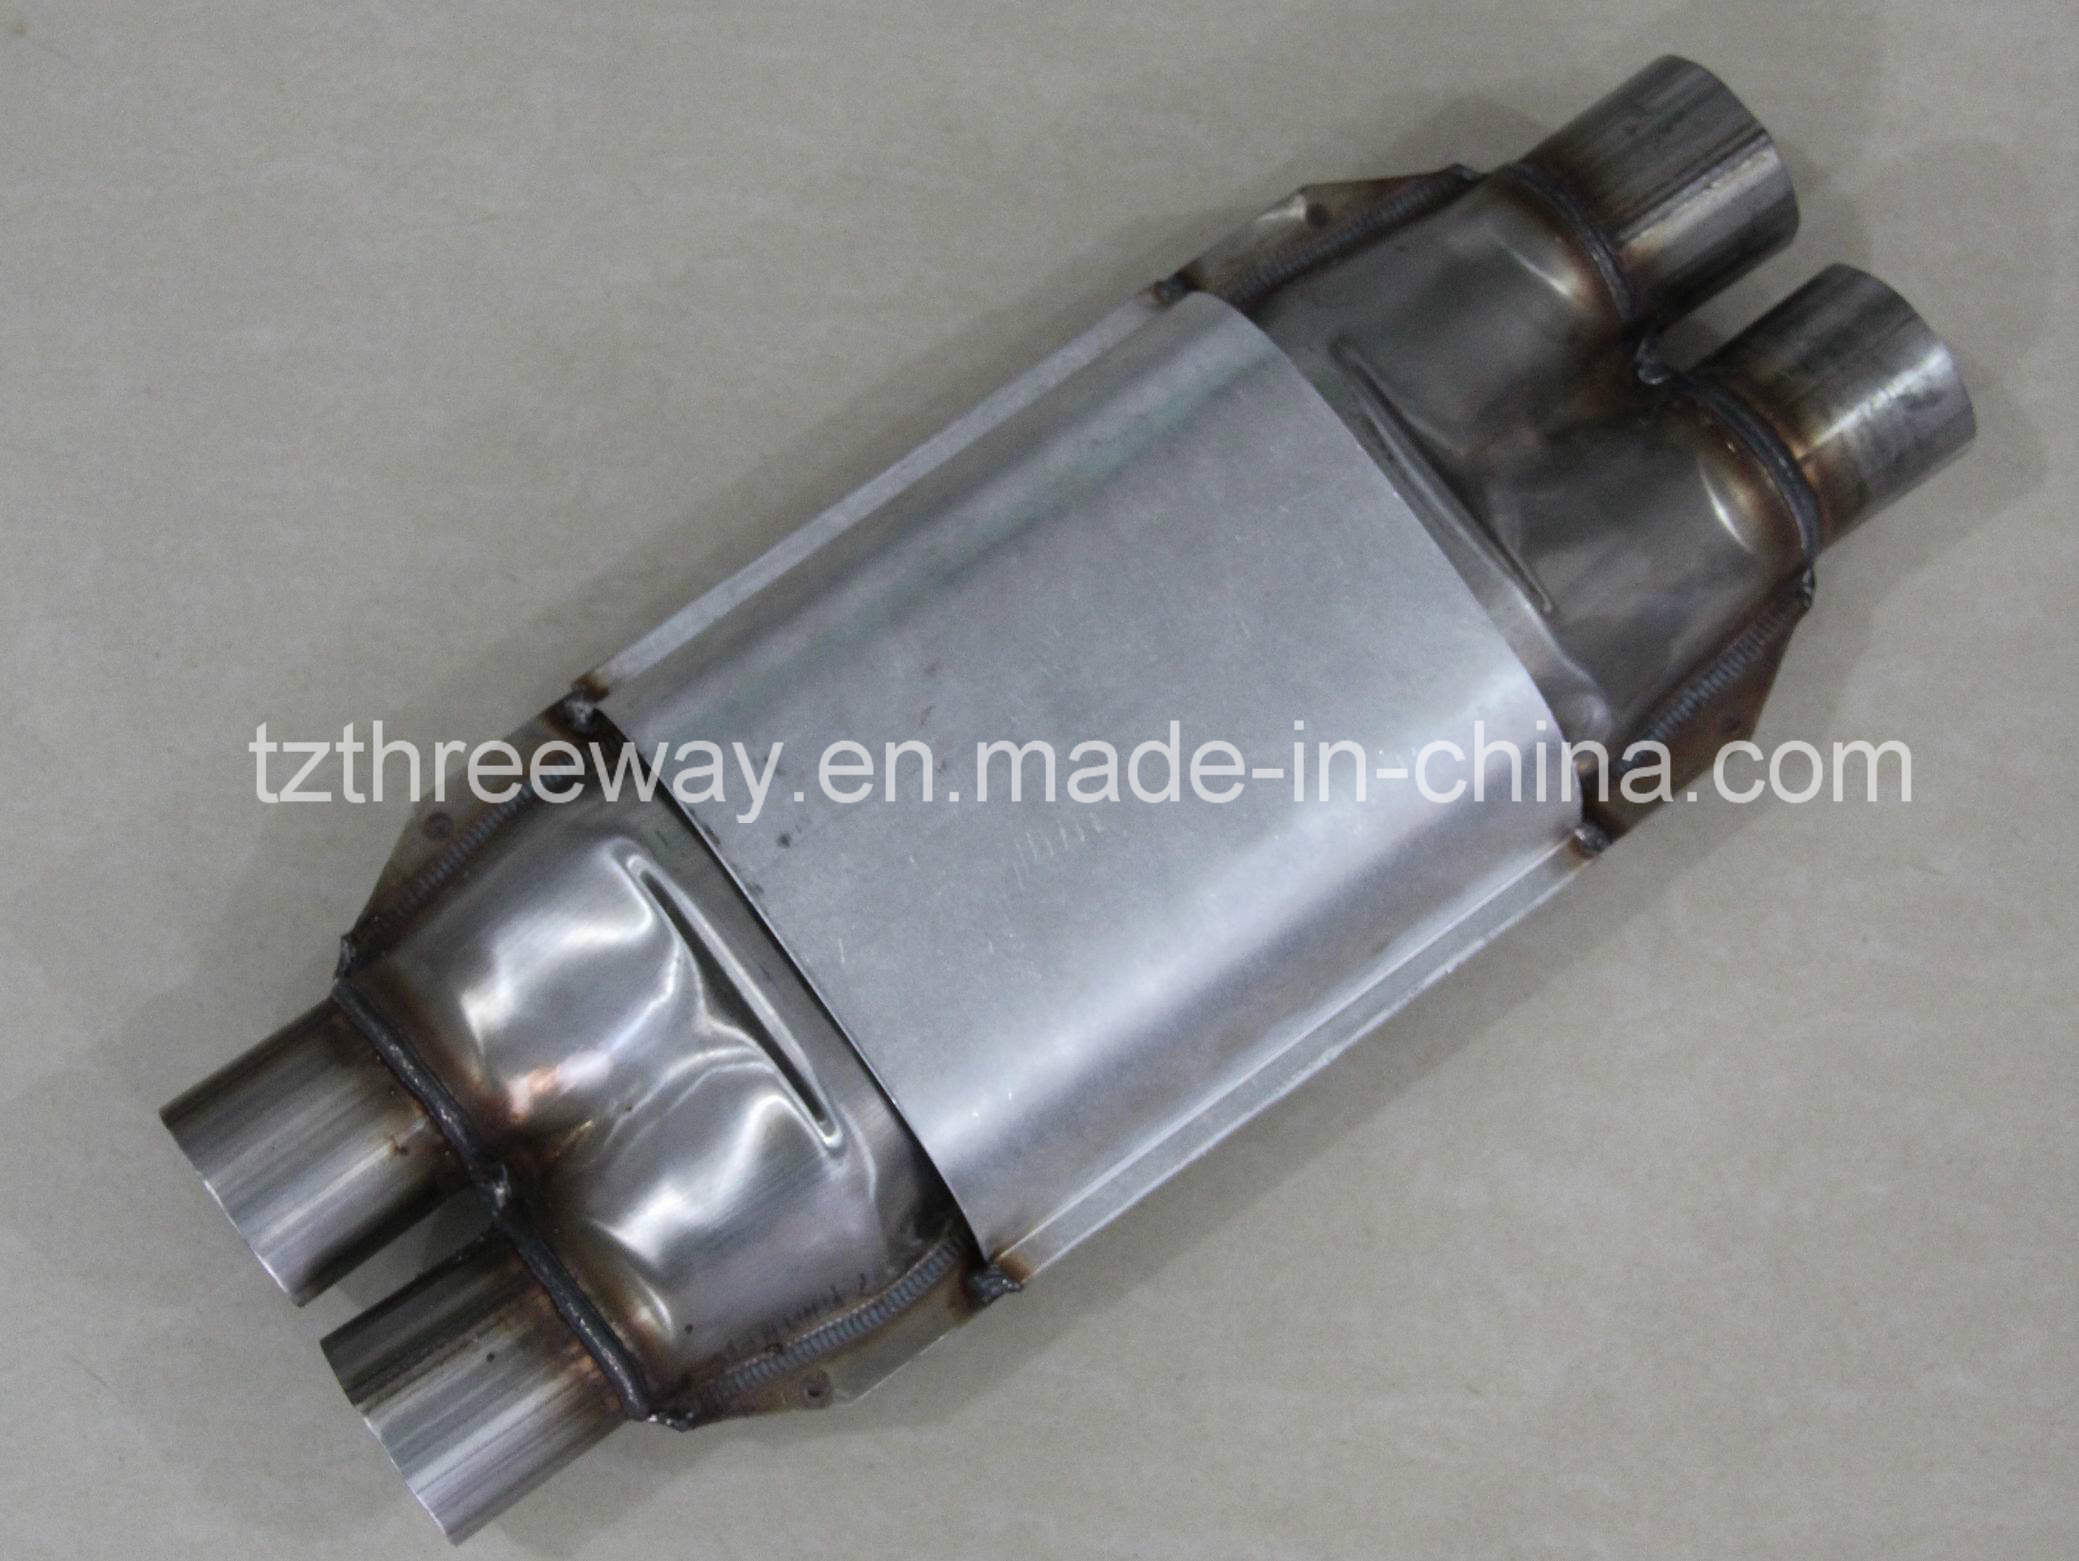 Magnaflow High-Flow Catalytic Converter -- Dual/Dual